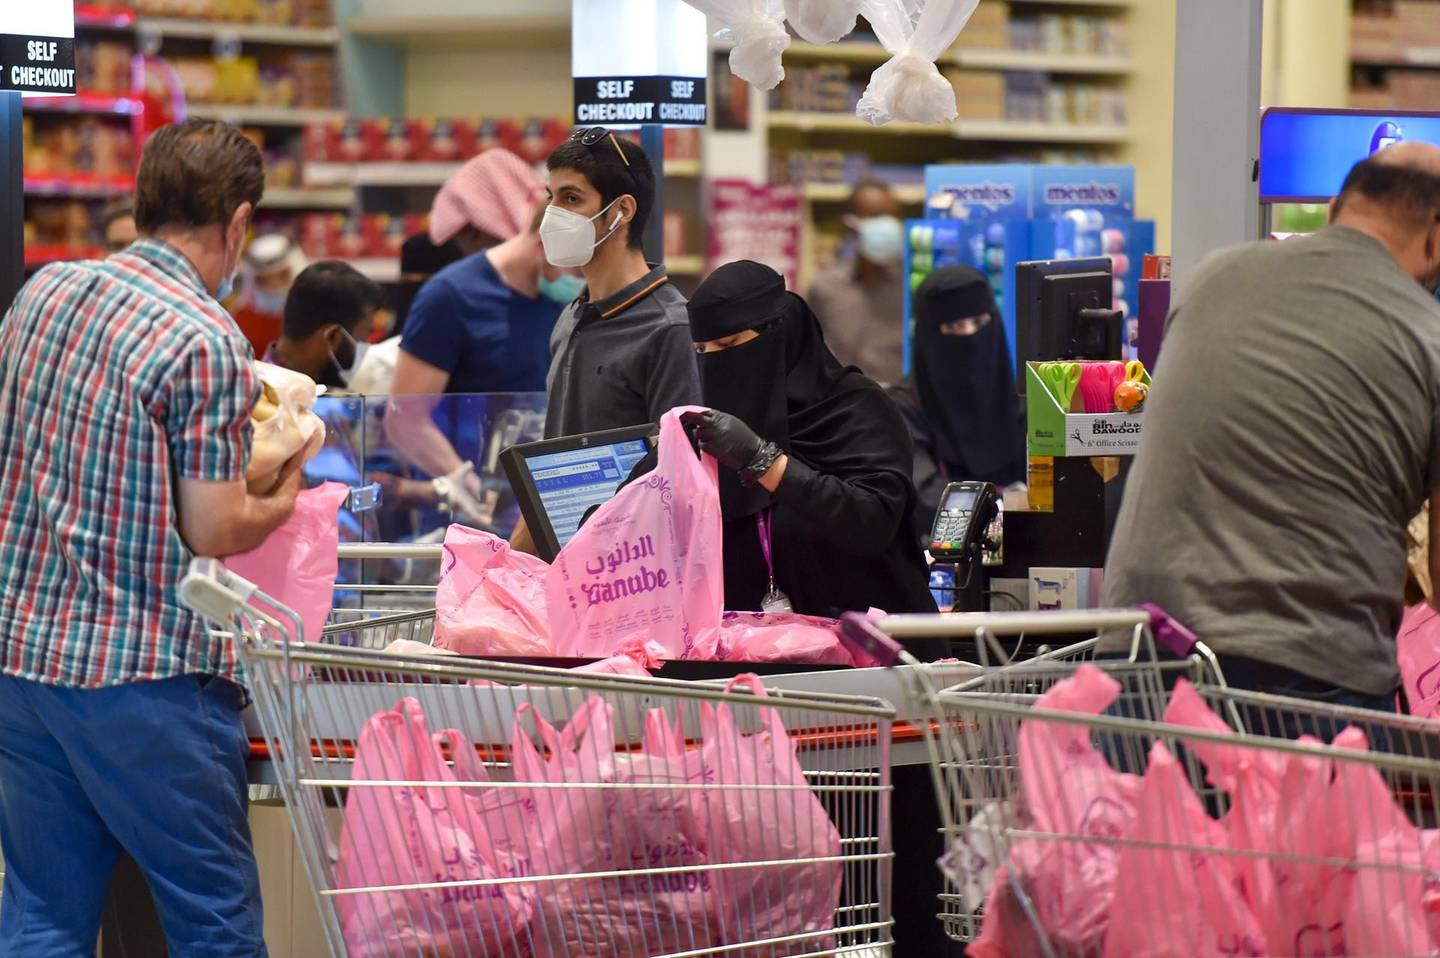 Saudis shop at a supermarket at the Panorama Mall in the capital Riyadh on May 22, 2020, as Muslims prepare to celebrate the upcoming Eid al-Fitr, that marks the end of the fasting month of Ramadan.   / AFP / FAYEZ NURELDINE